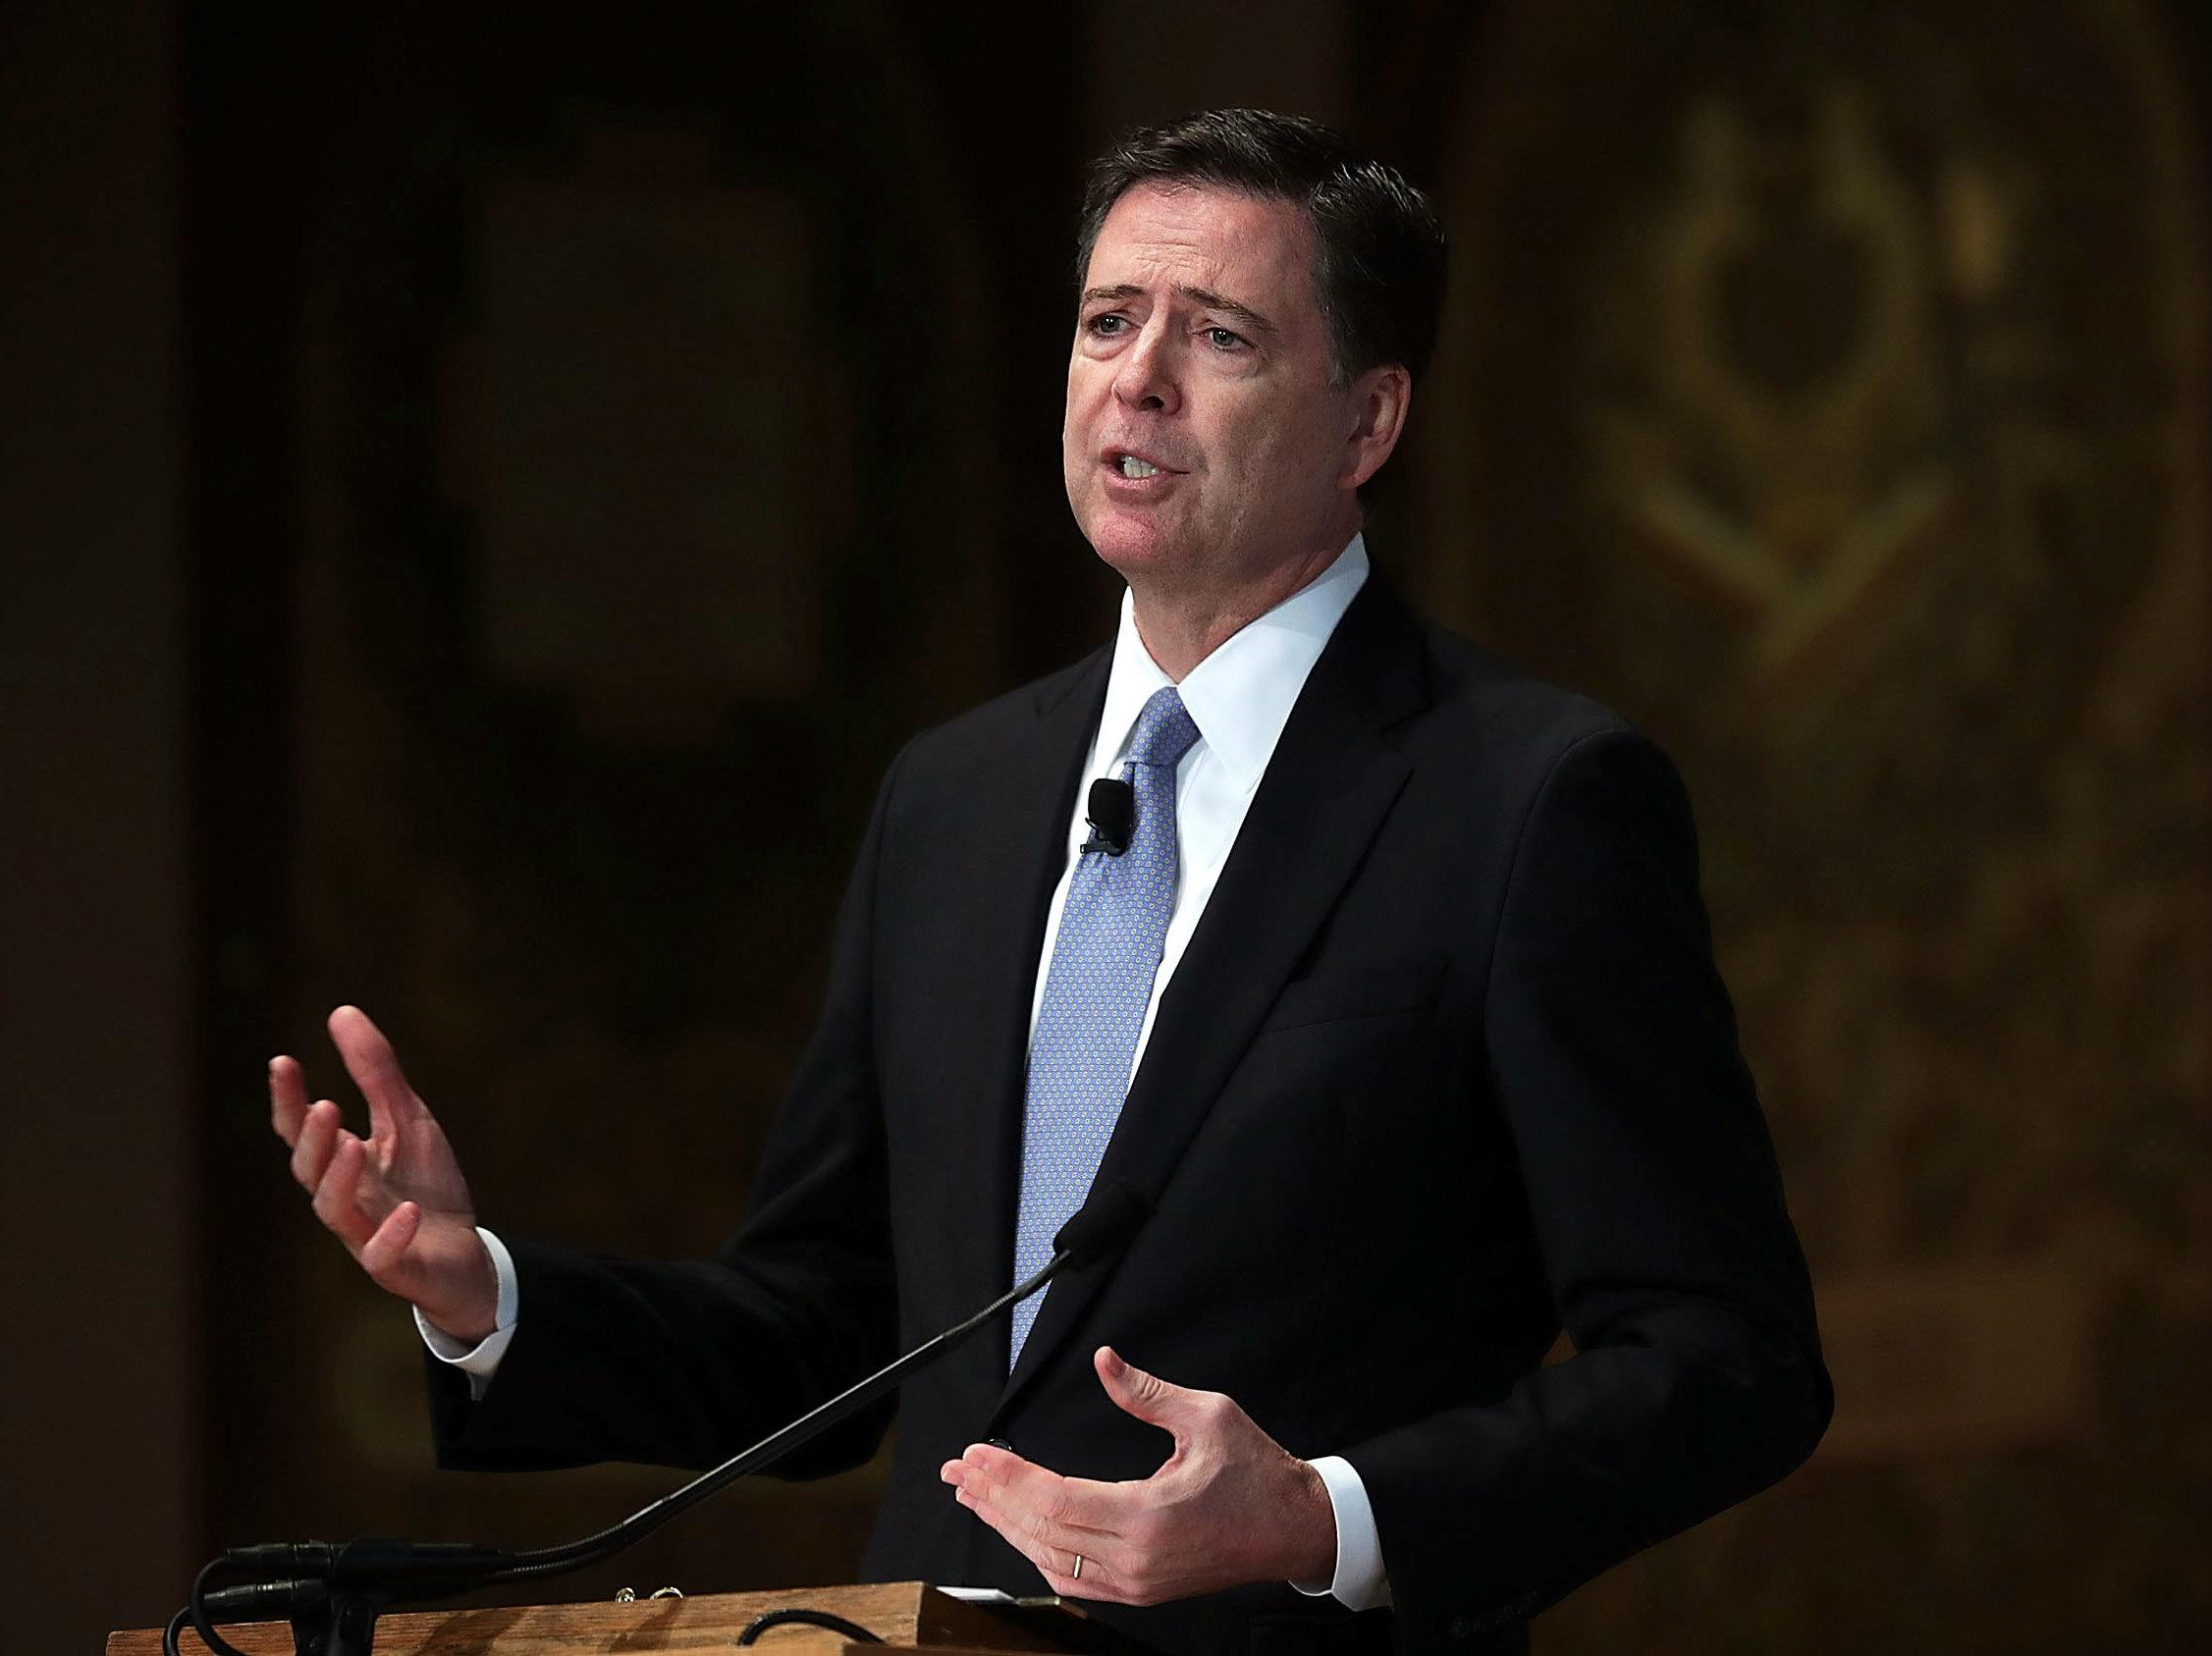 You're Hired!: Howard University Appoints James Comey As Public Policy Chair